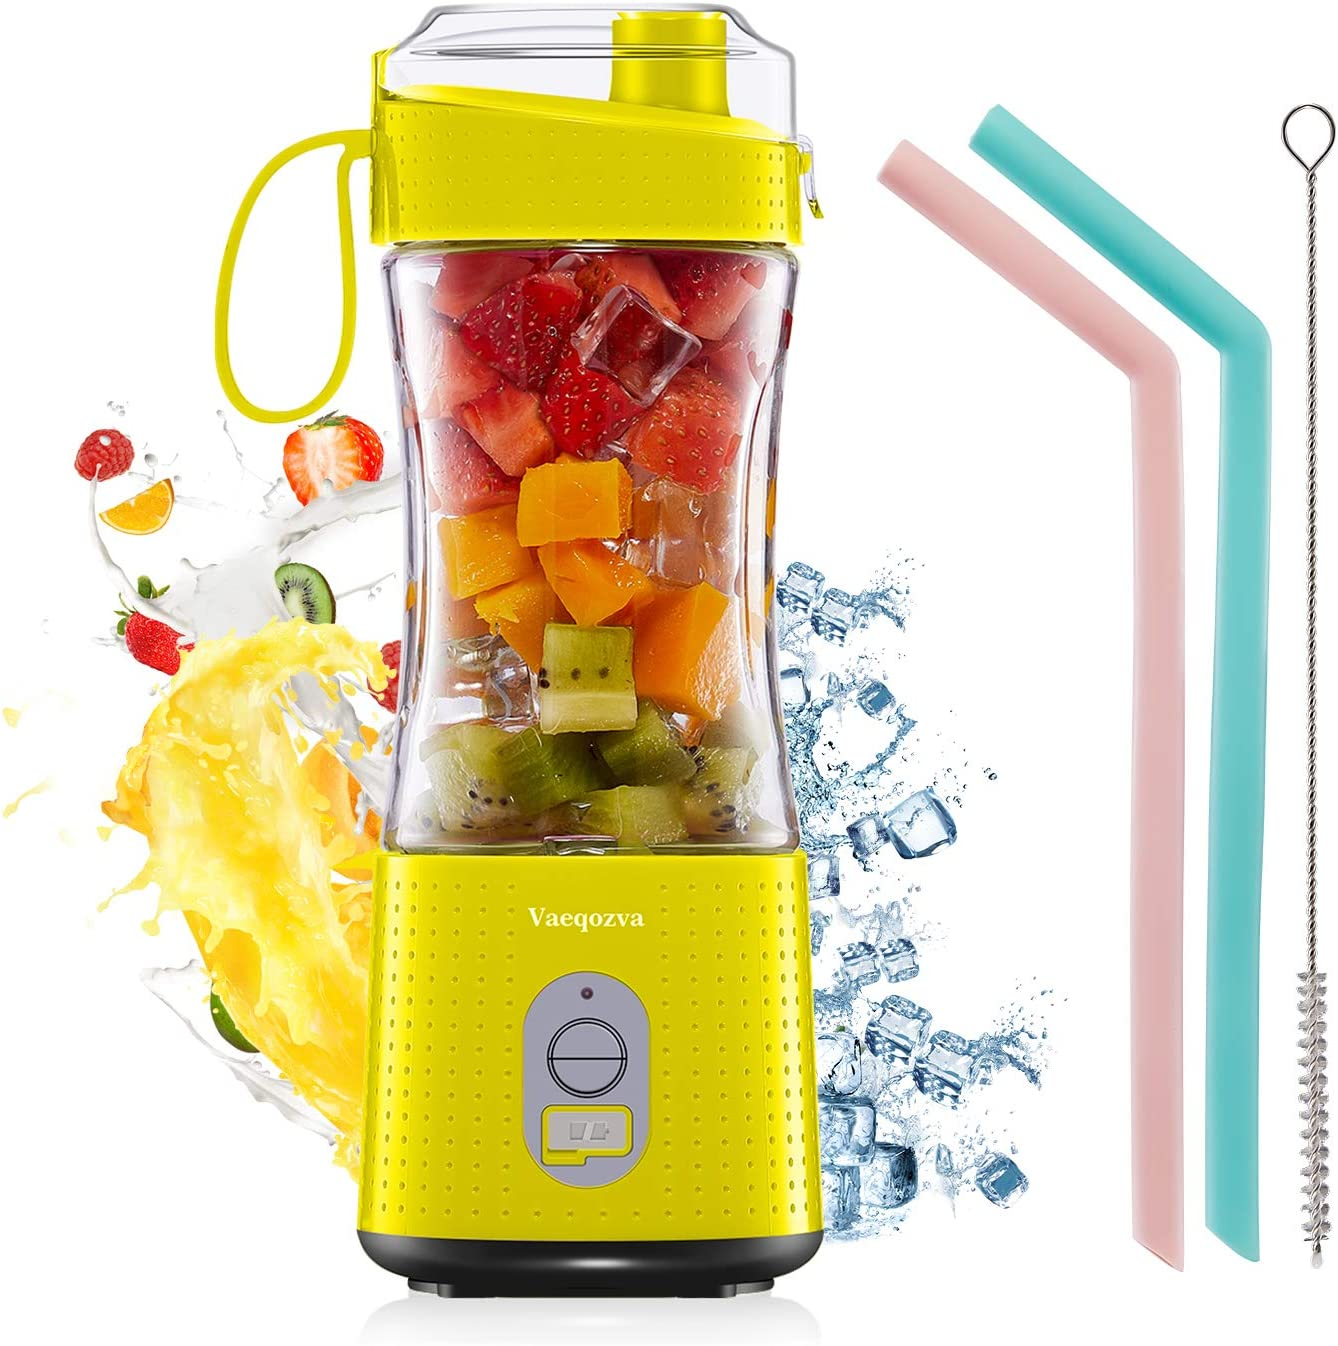 Vaeqozva Portable Blender, Personal USB Rechargeable Juice Cup for Smoothie and Protein Shakes Mini Handheld Fruit Mixer 13Oz Bottle for Travel Gym Home Office Sports Outdoors Yellow